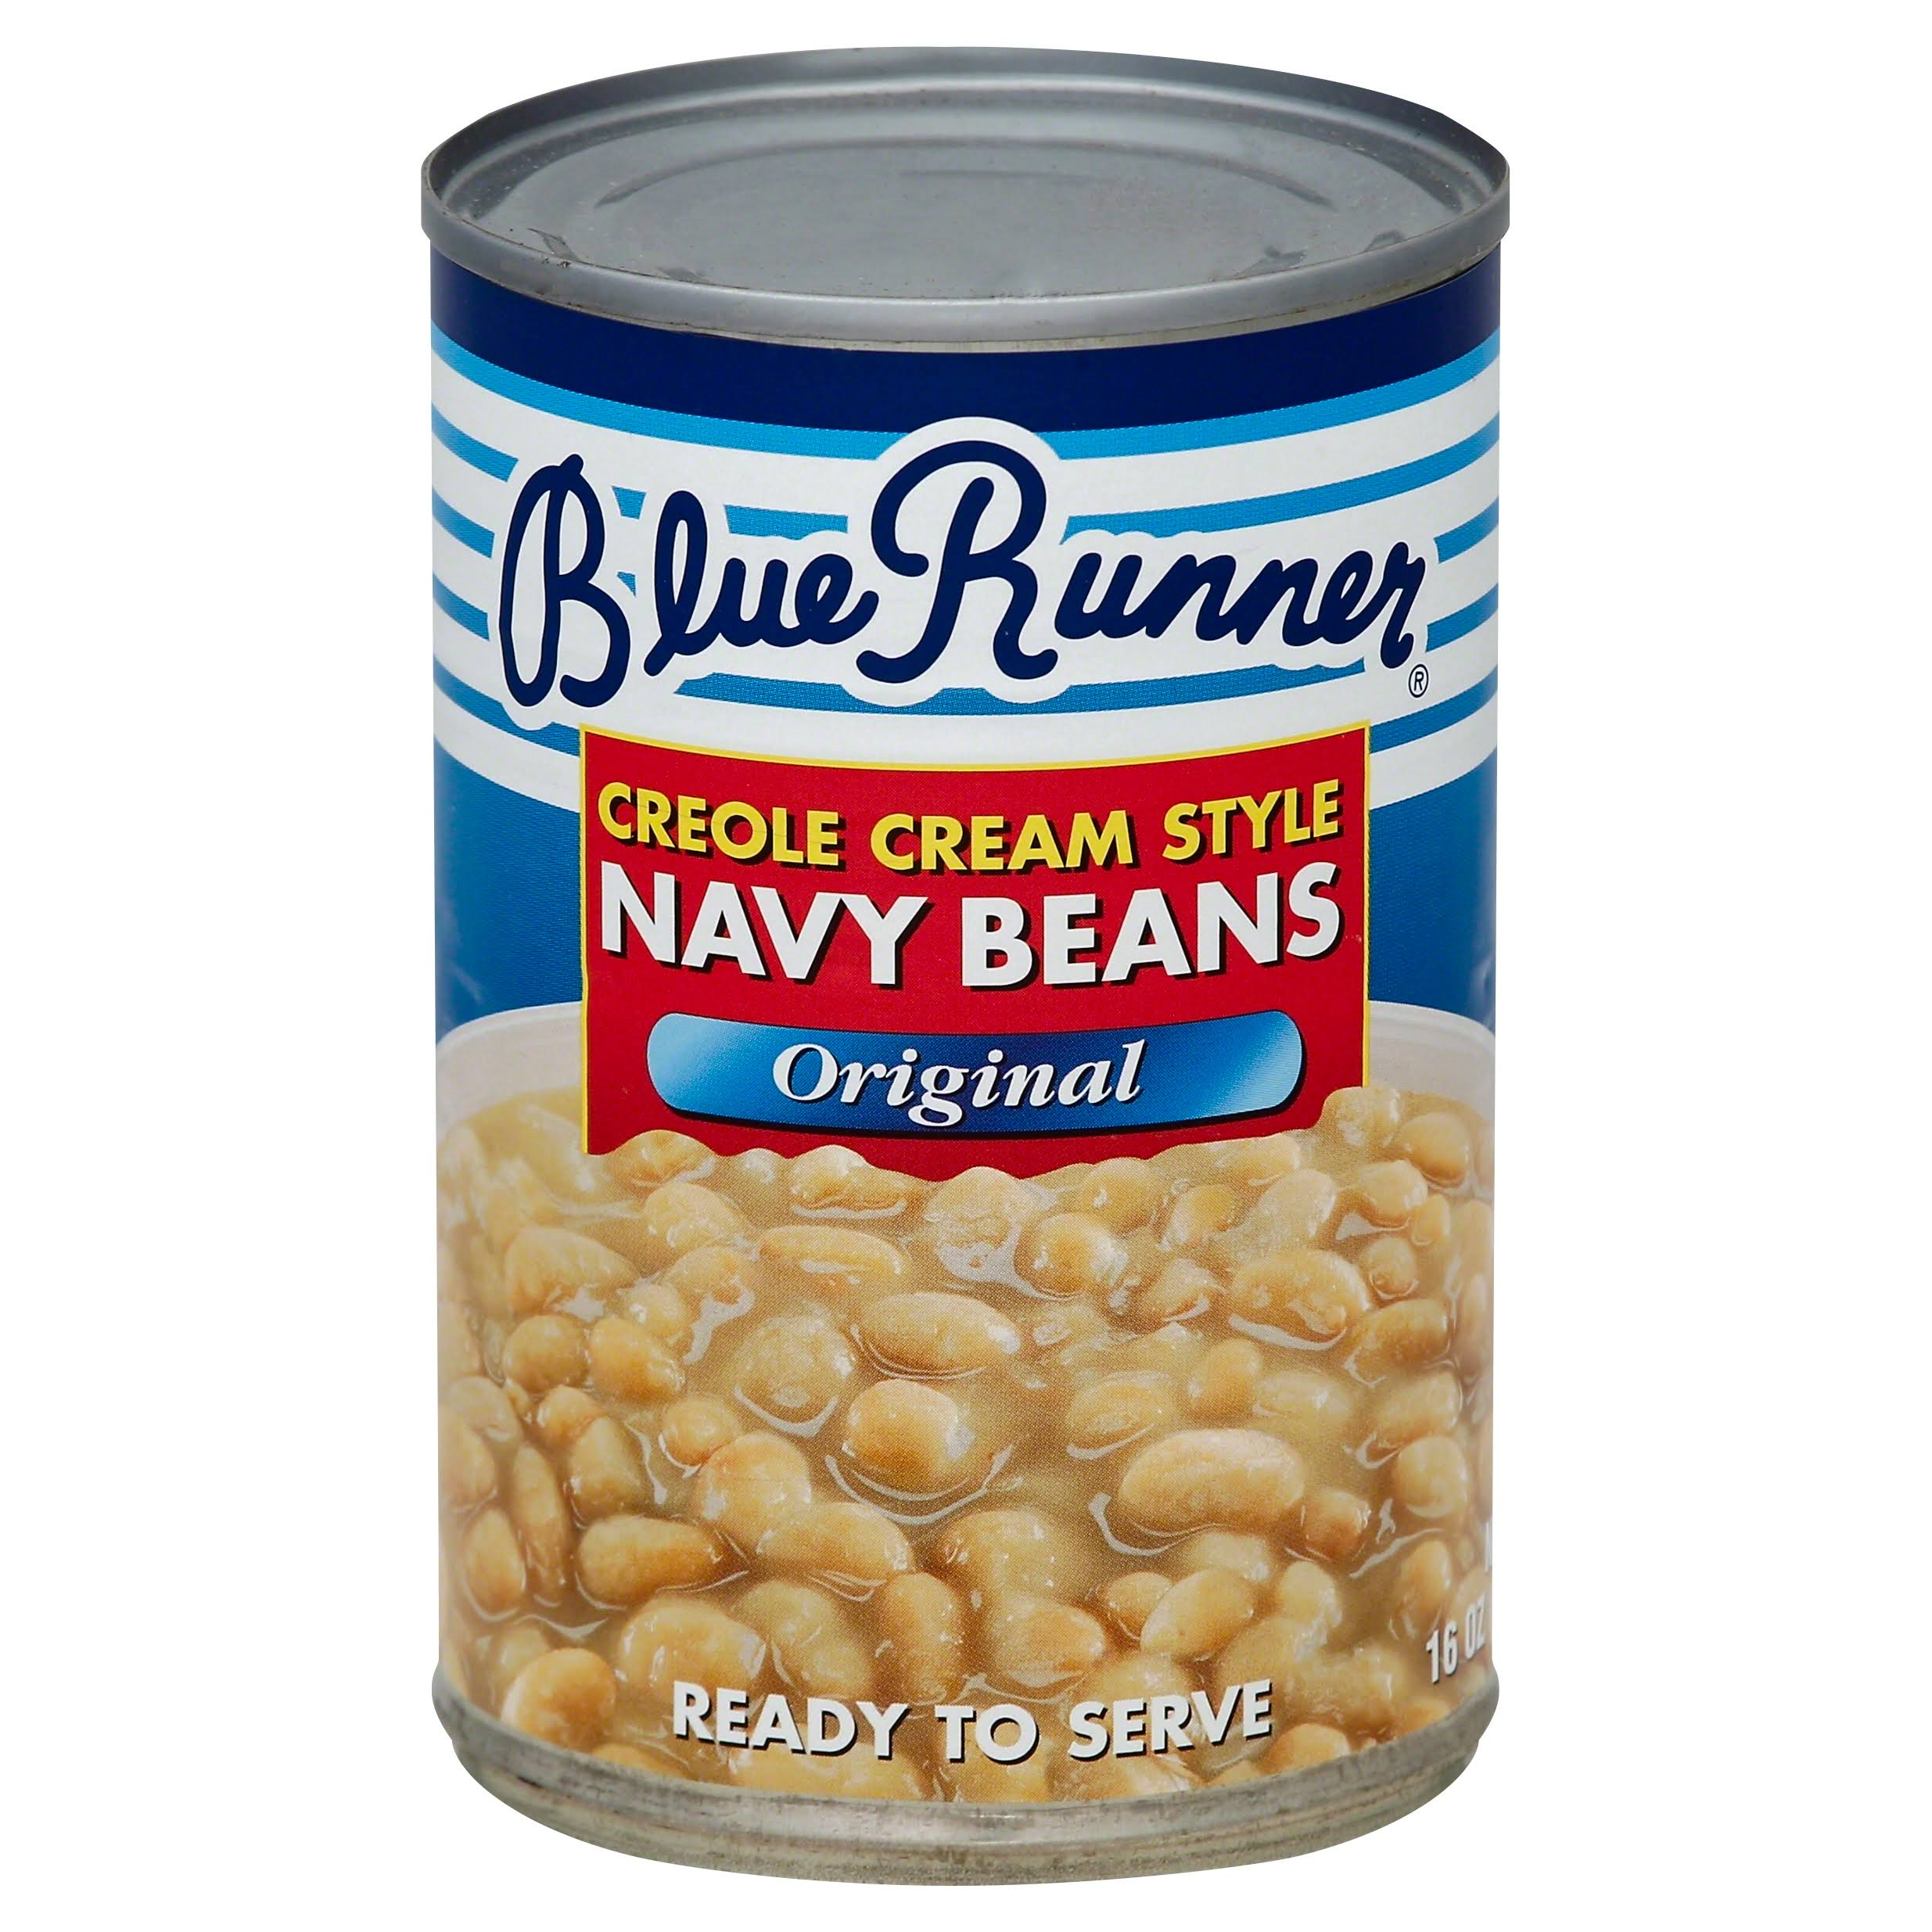 Blue Runner Creole Cream Style Navy Beans - 16oz